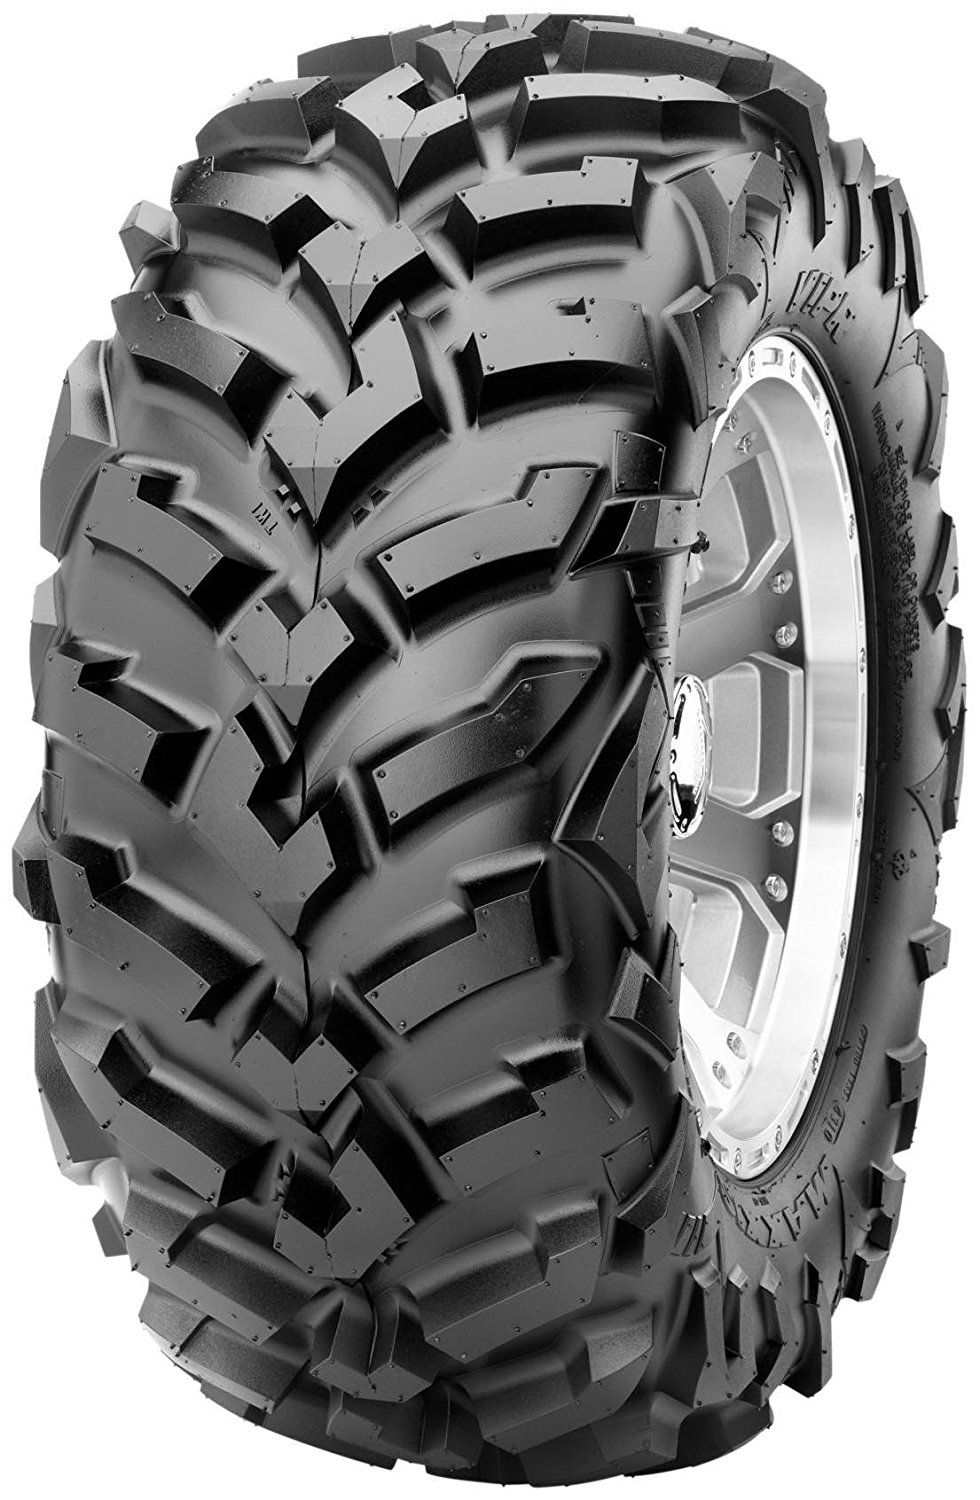 Maxxis Cheng Shin MU16 Vipr Radial Tire - Rear - 26x11Rx12 , Position: Rear, Rim Size: 12, Tire Application: All-Terrain, Tire Size: 26x11x12, Tire Type: ATV/UTV, Tire Construction: Radial, Tire Ply: 6 TM00667100